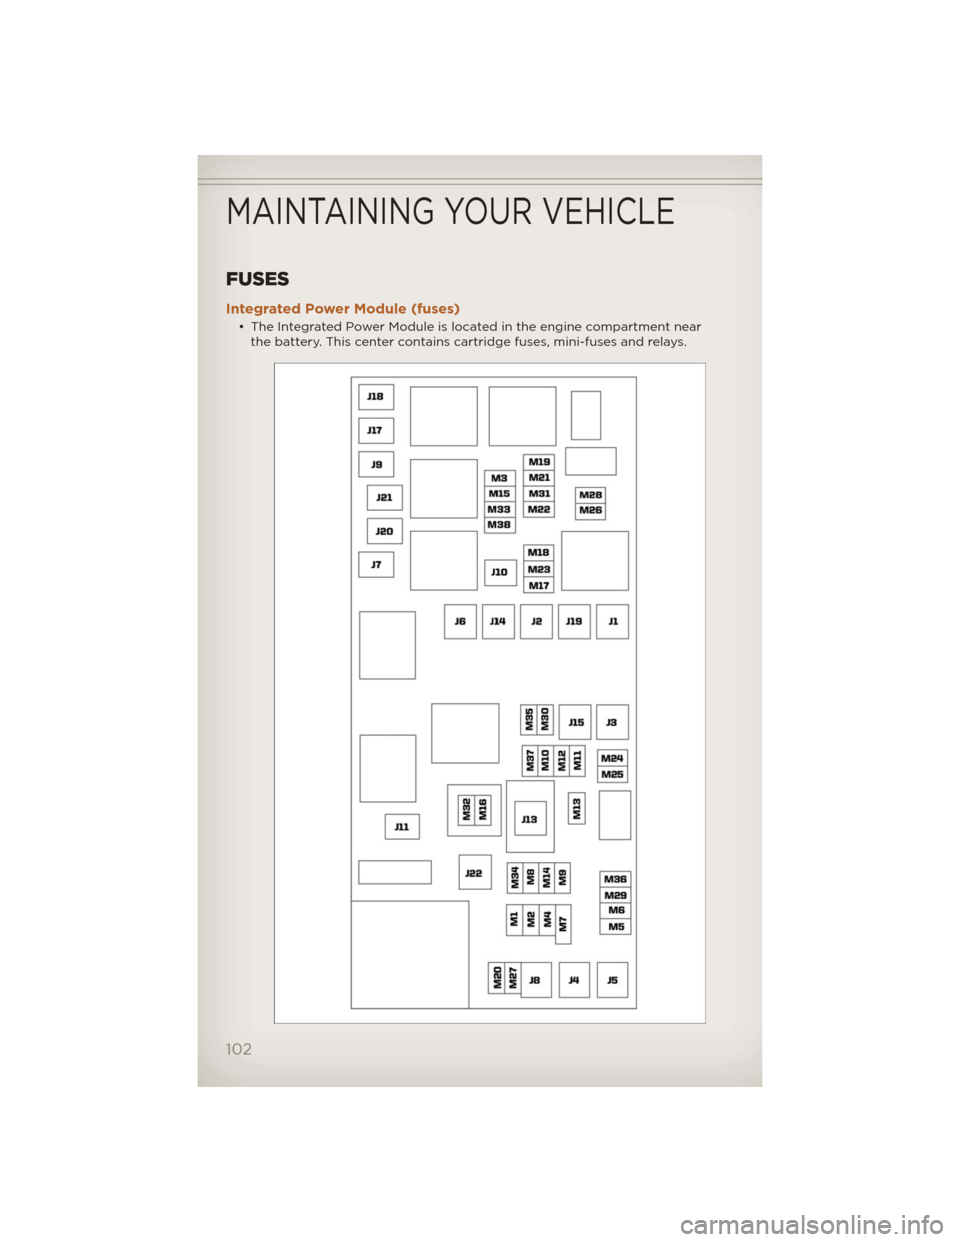 jeep liberty 2012 kk / 2 g user guide, page 104  fuses